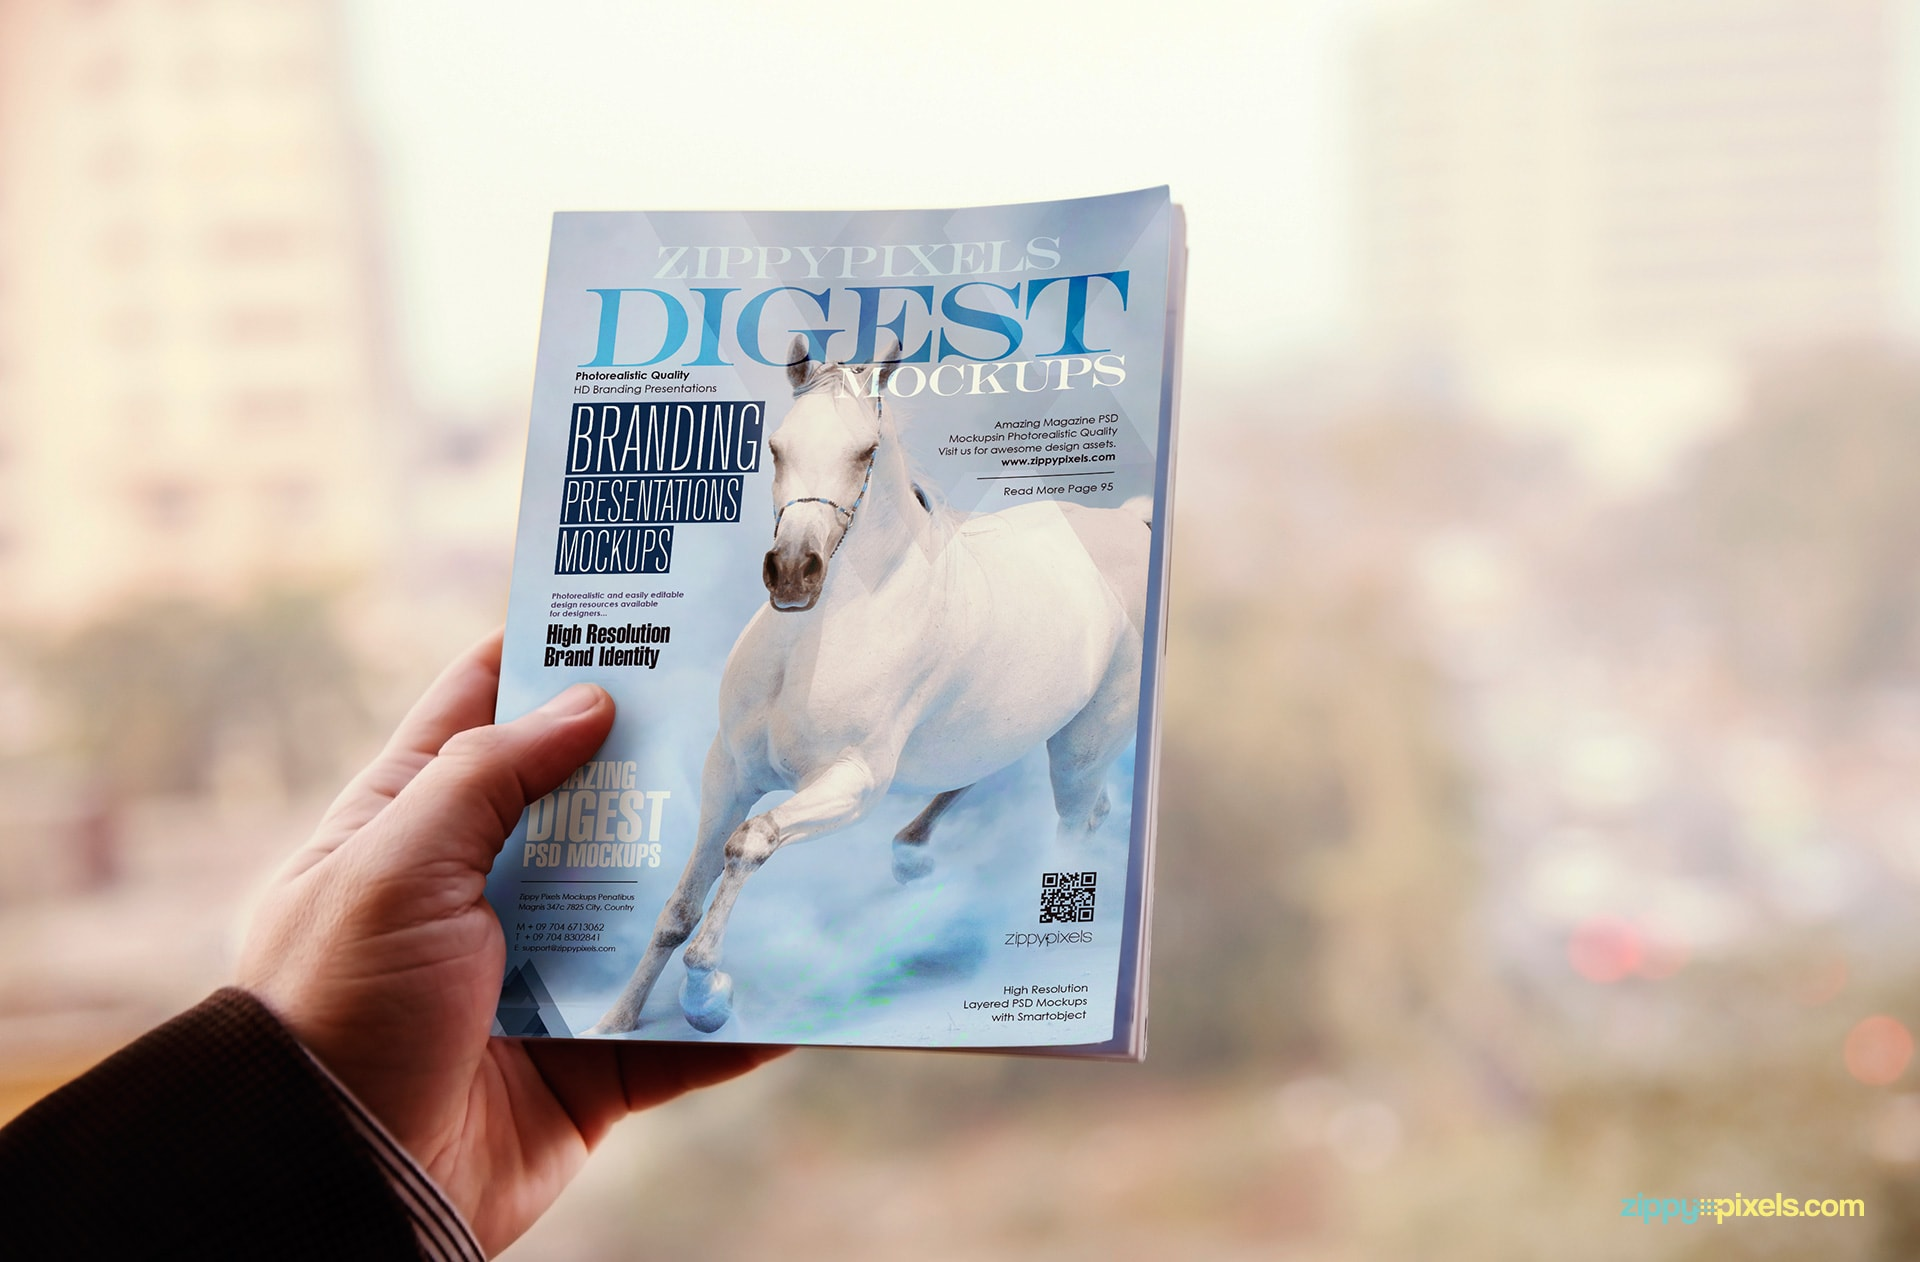 free-digest-magaine-cover-mockup-in-hand